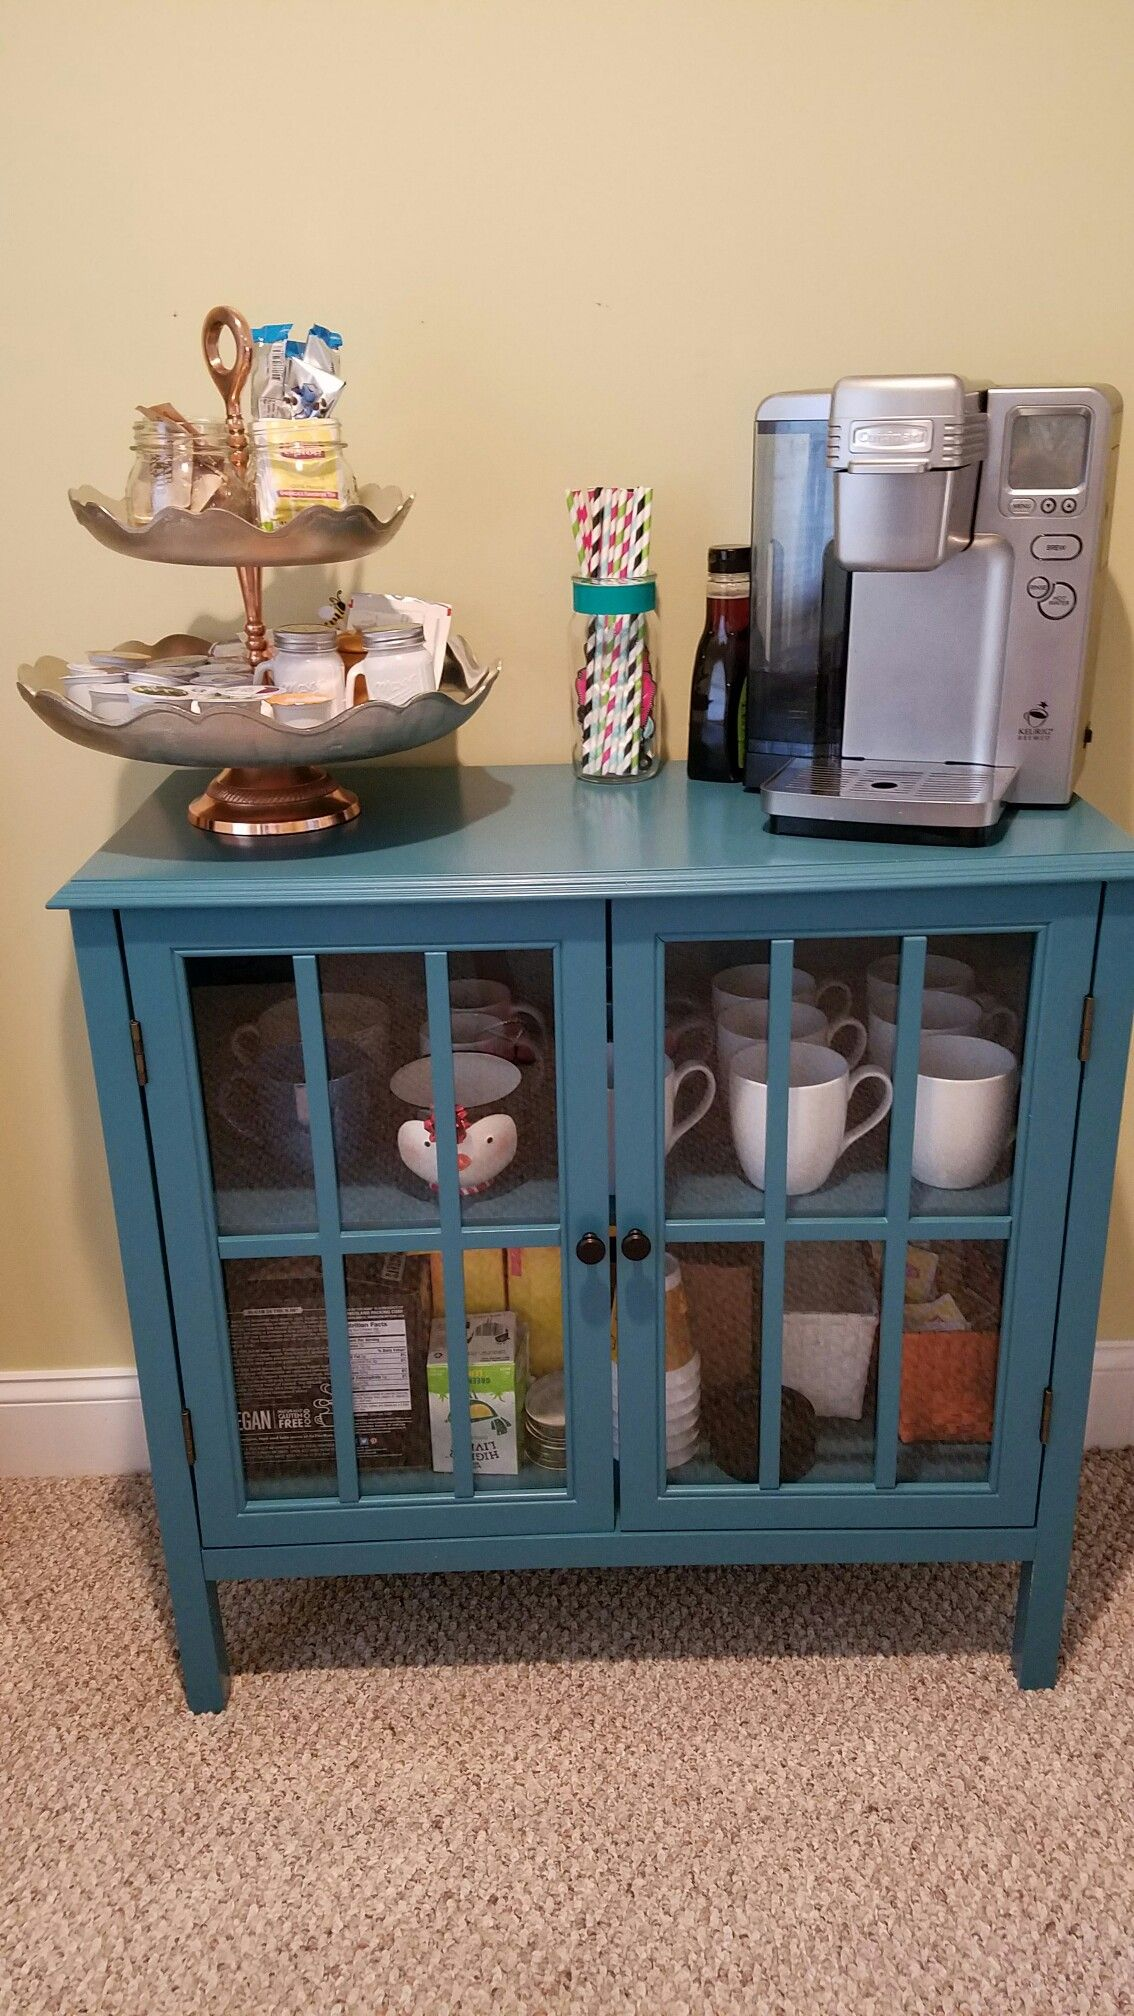 Coffee Station Target Windham Collection Cabinet 2 Tier Shelf  # Bienes Muebles Rae